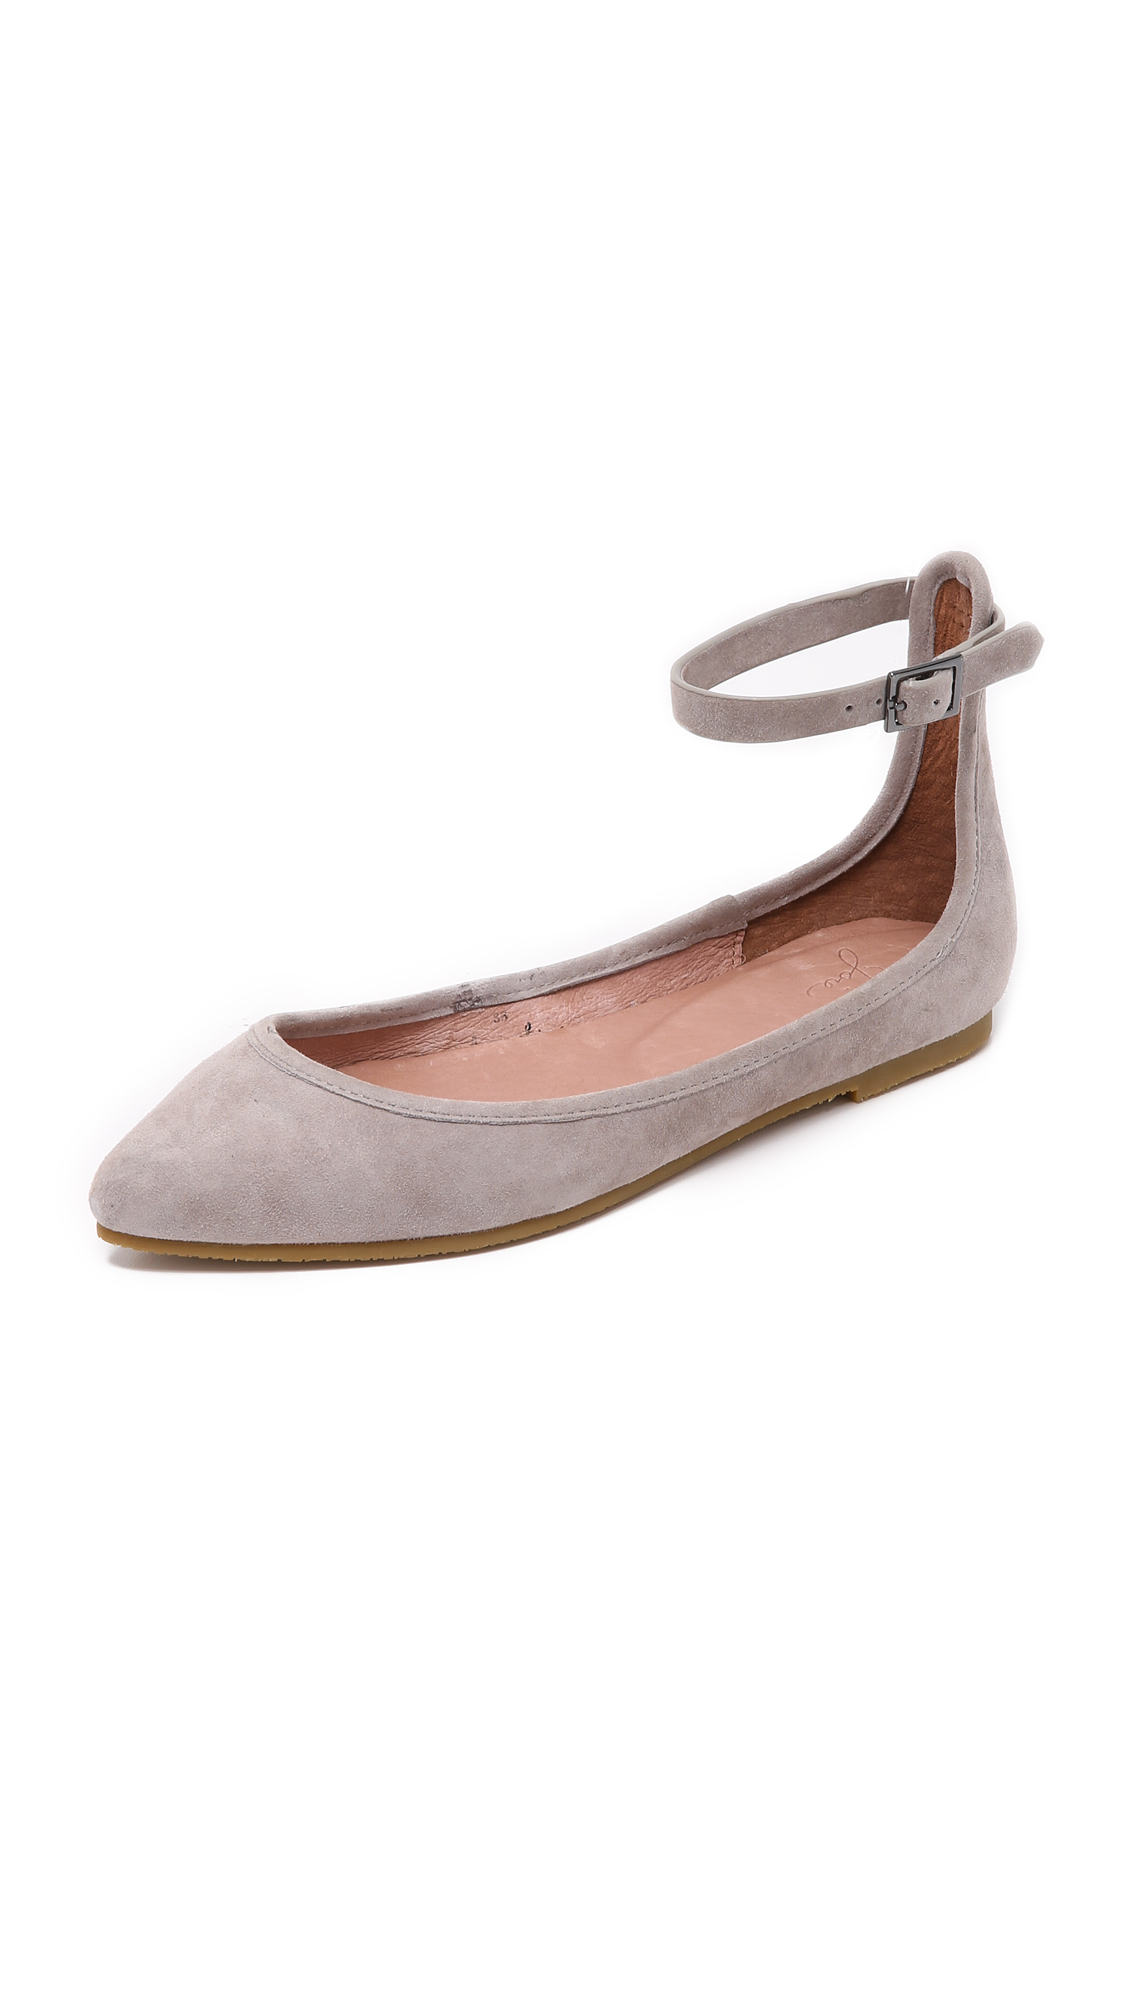 Joie Temple Suede Ankle-strap Flats In Dove